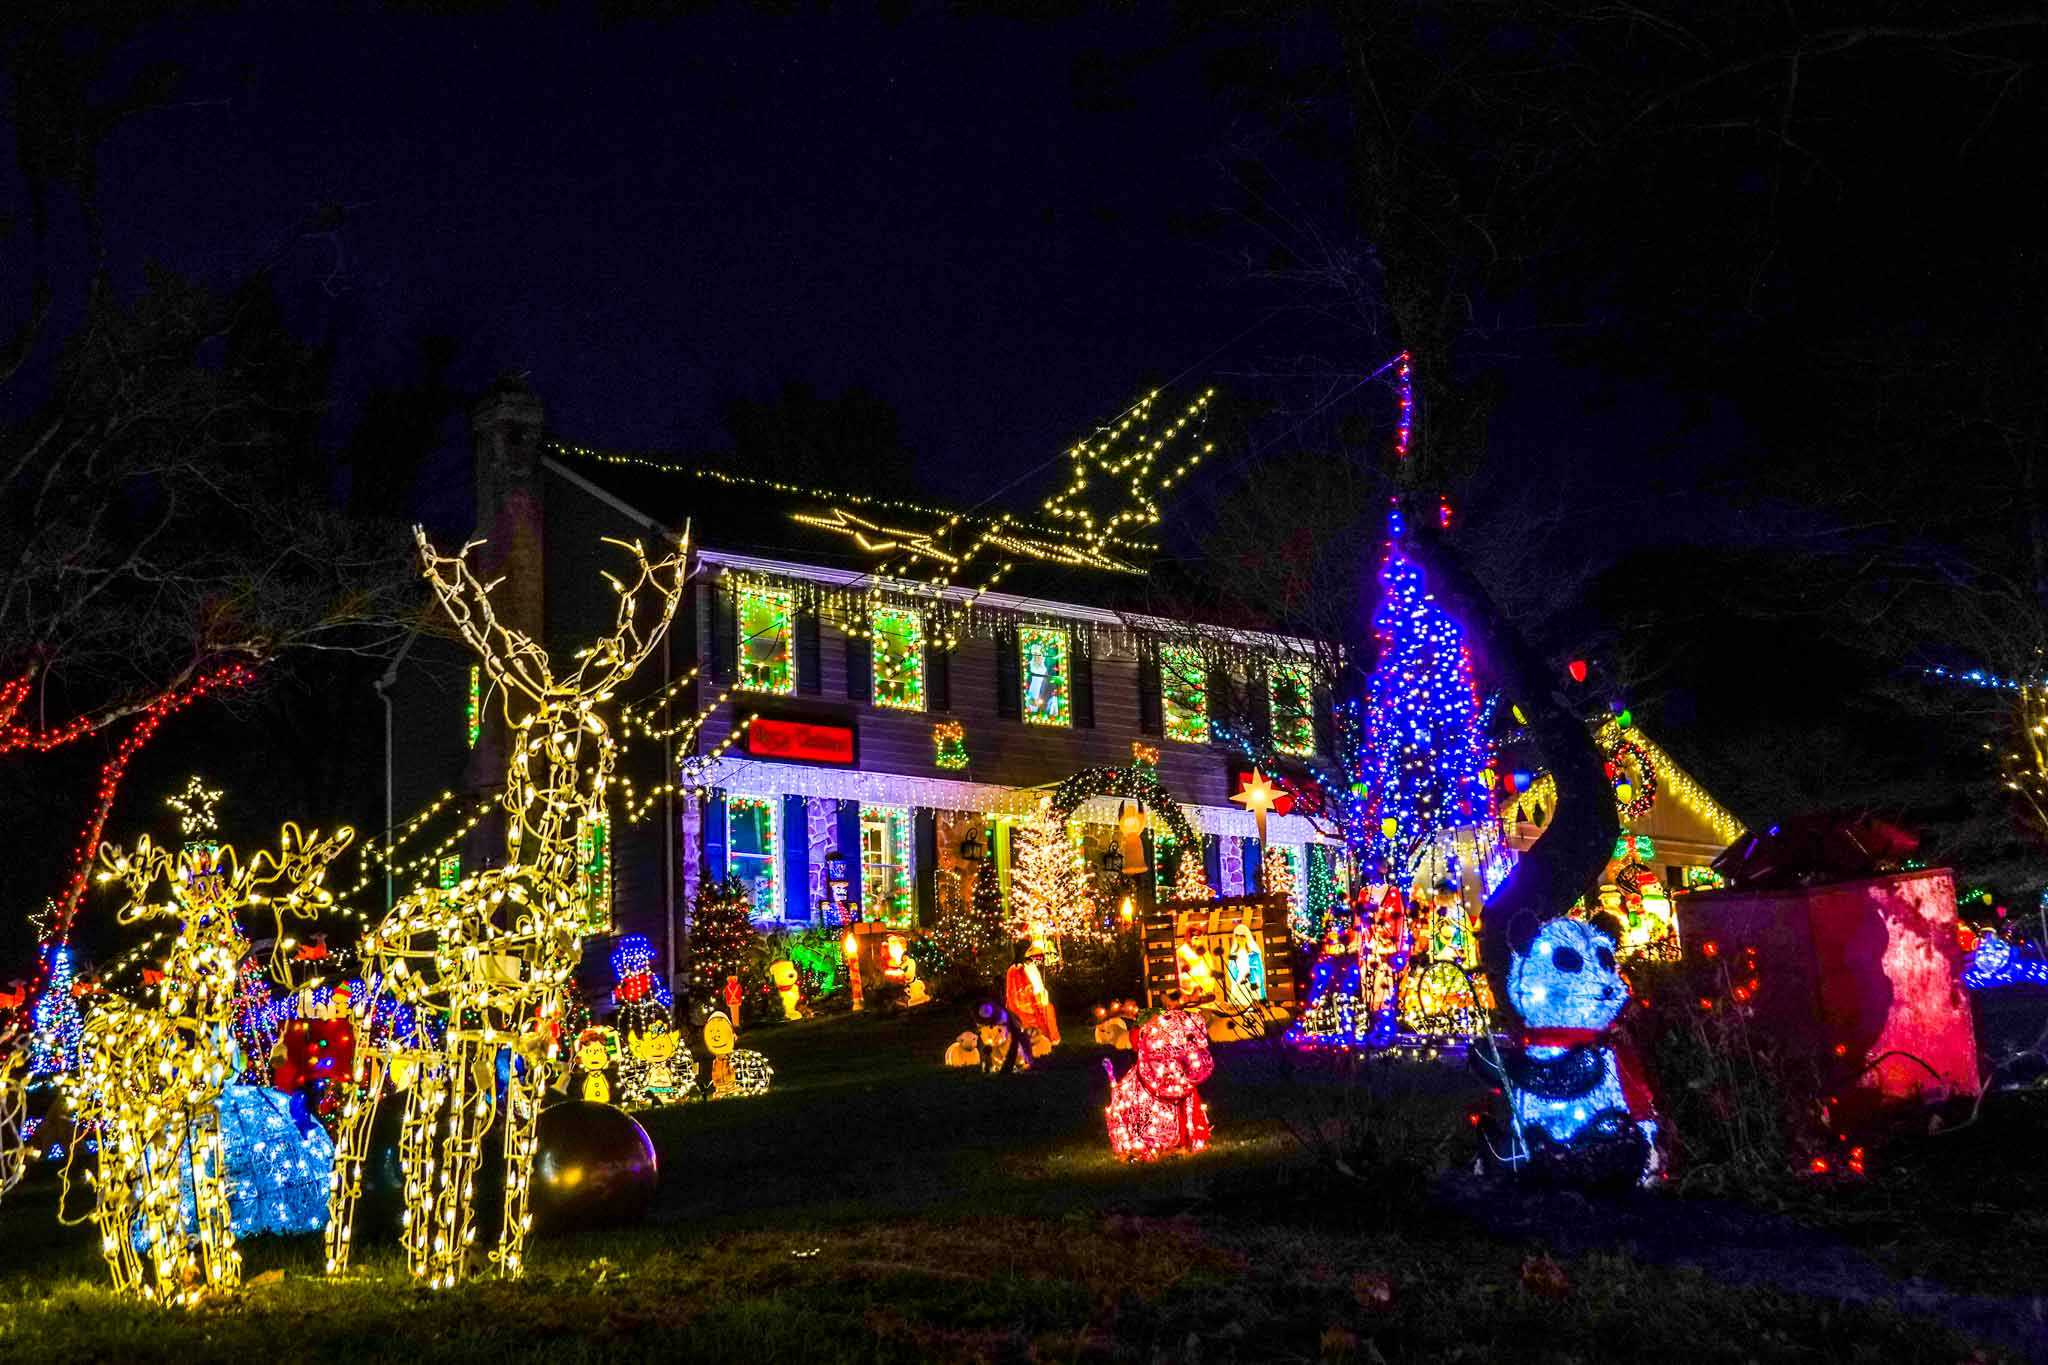 House and yard covered in figurines and lights